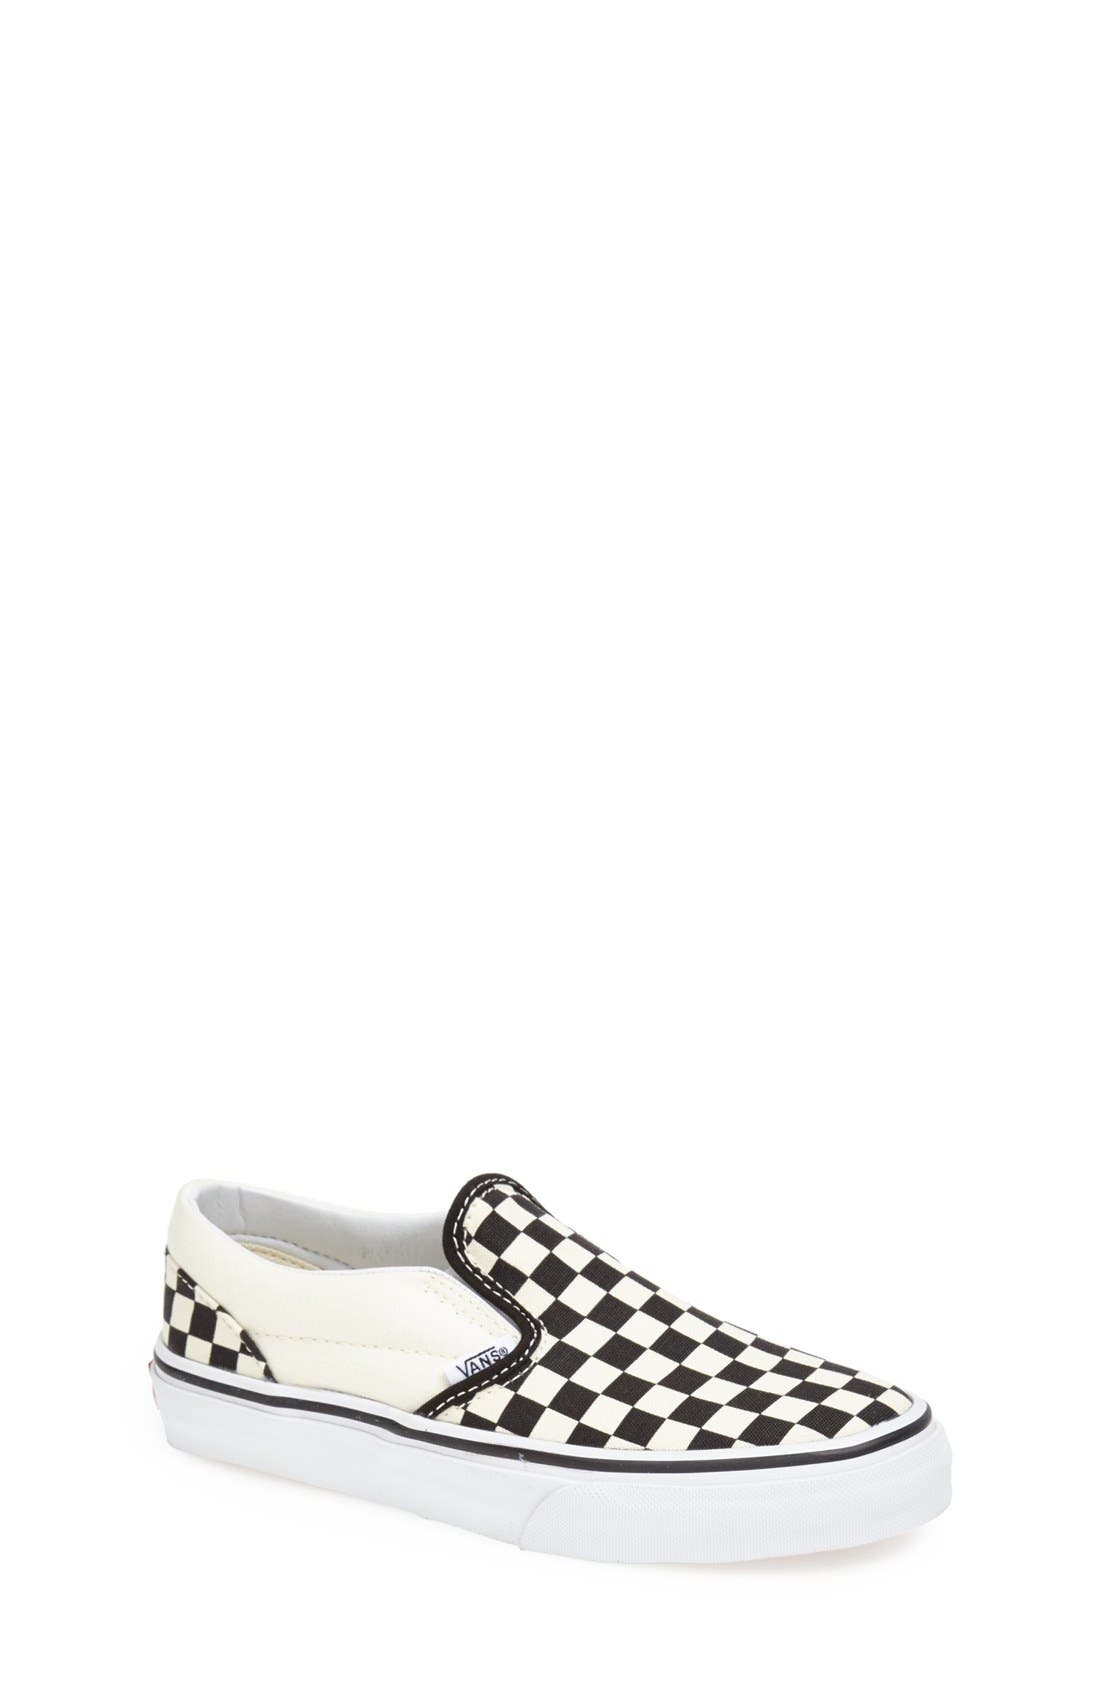 VANS 'Classic - Checkerboard' Slip-On, Main, color, BLACK/ WHITE CHECKERBOARD